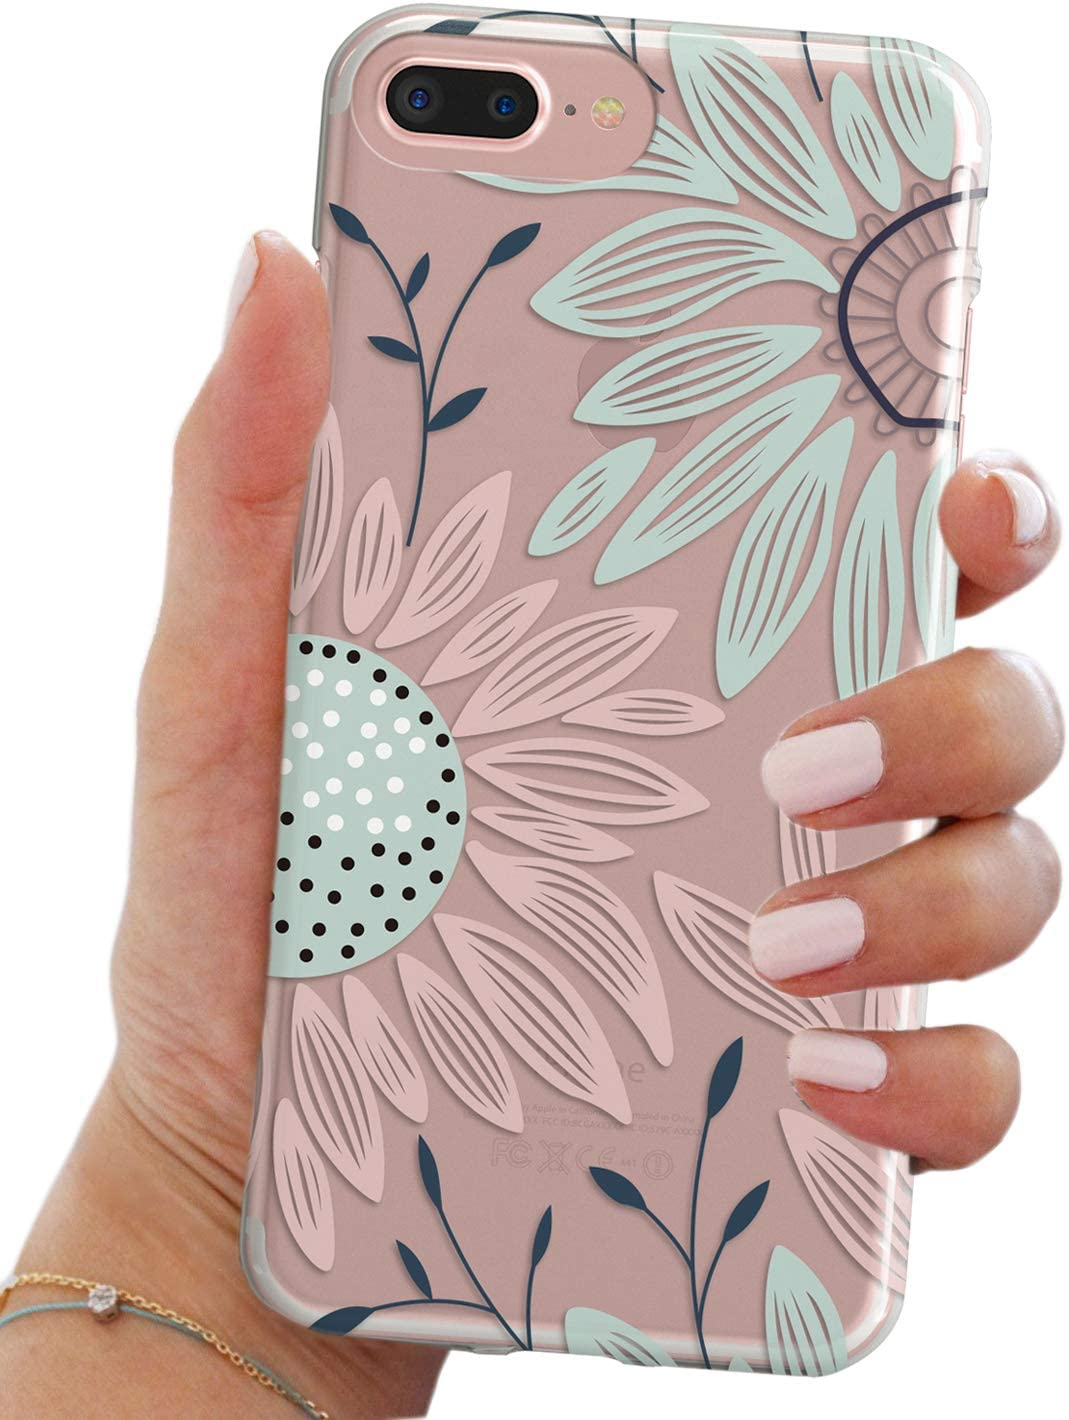 TRFAEE Stunning Spring Floral Blooms Flowers HD Clear Rubber Hand Drawing Anti-Scratch Good Vibe Case for iPhone 6 / 6S Case-Sunflower Daisy Pattern TPU Case Cover